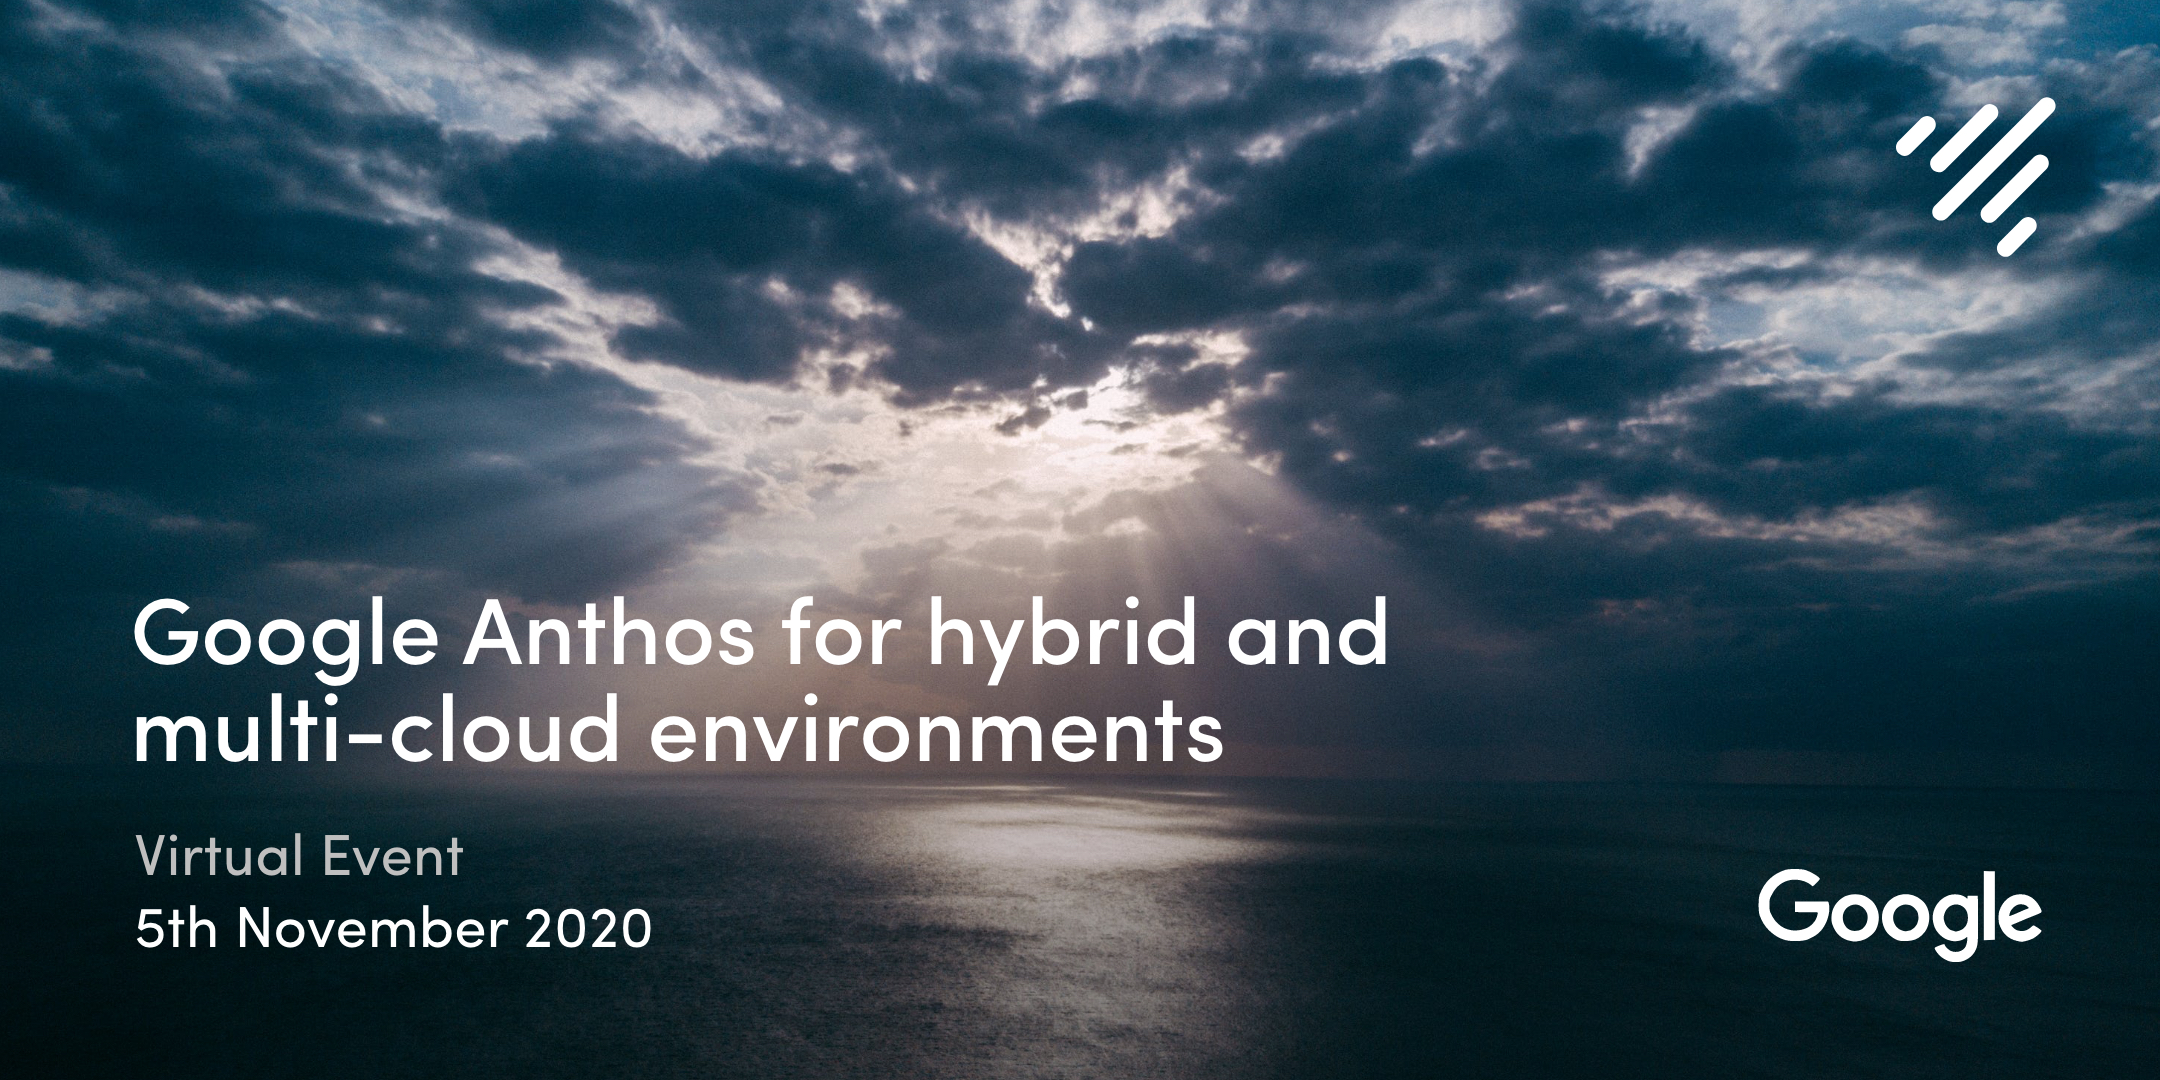 Google Anthos for hybrid and multi-cloud environments